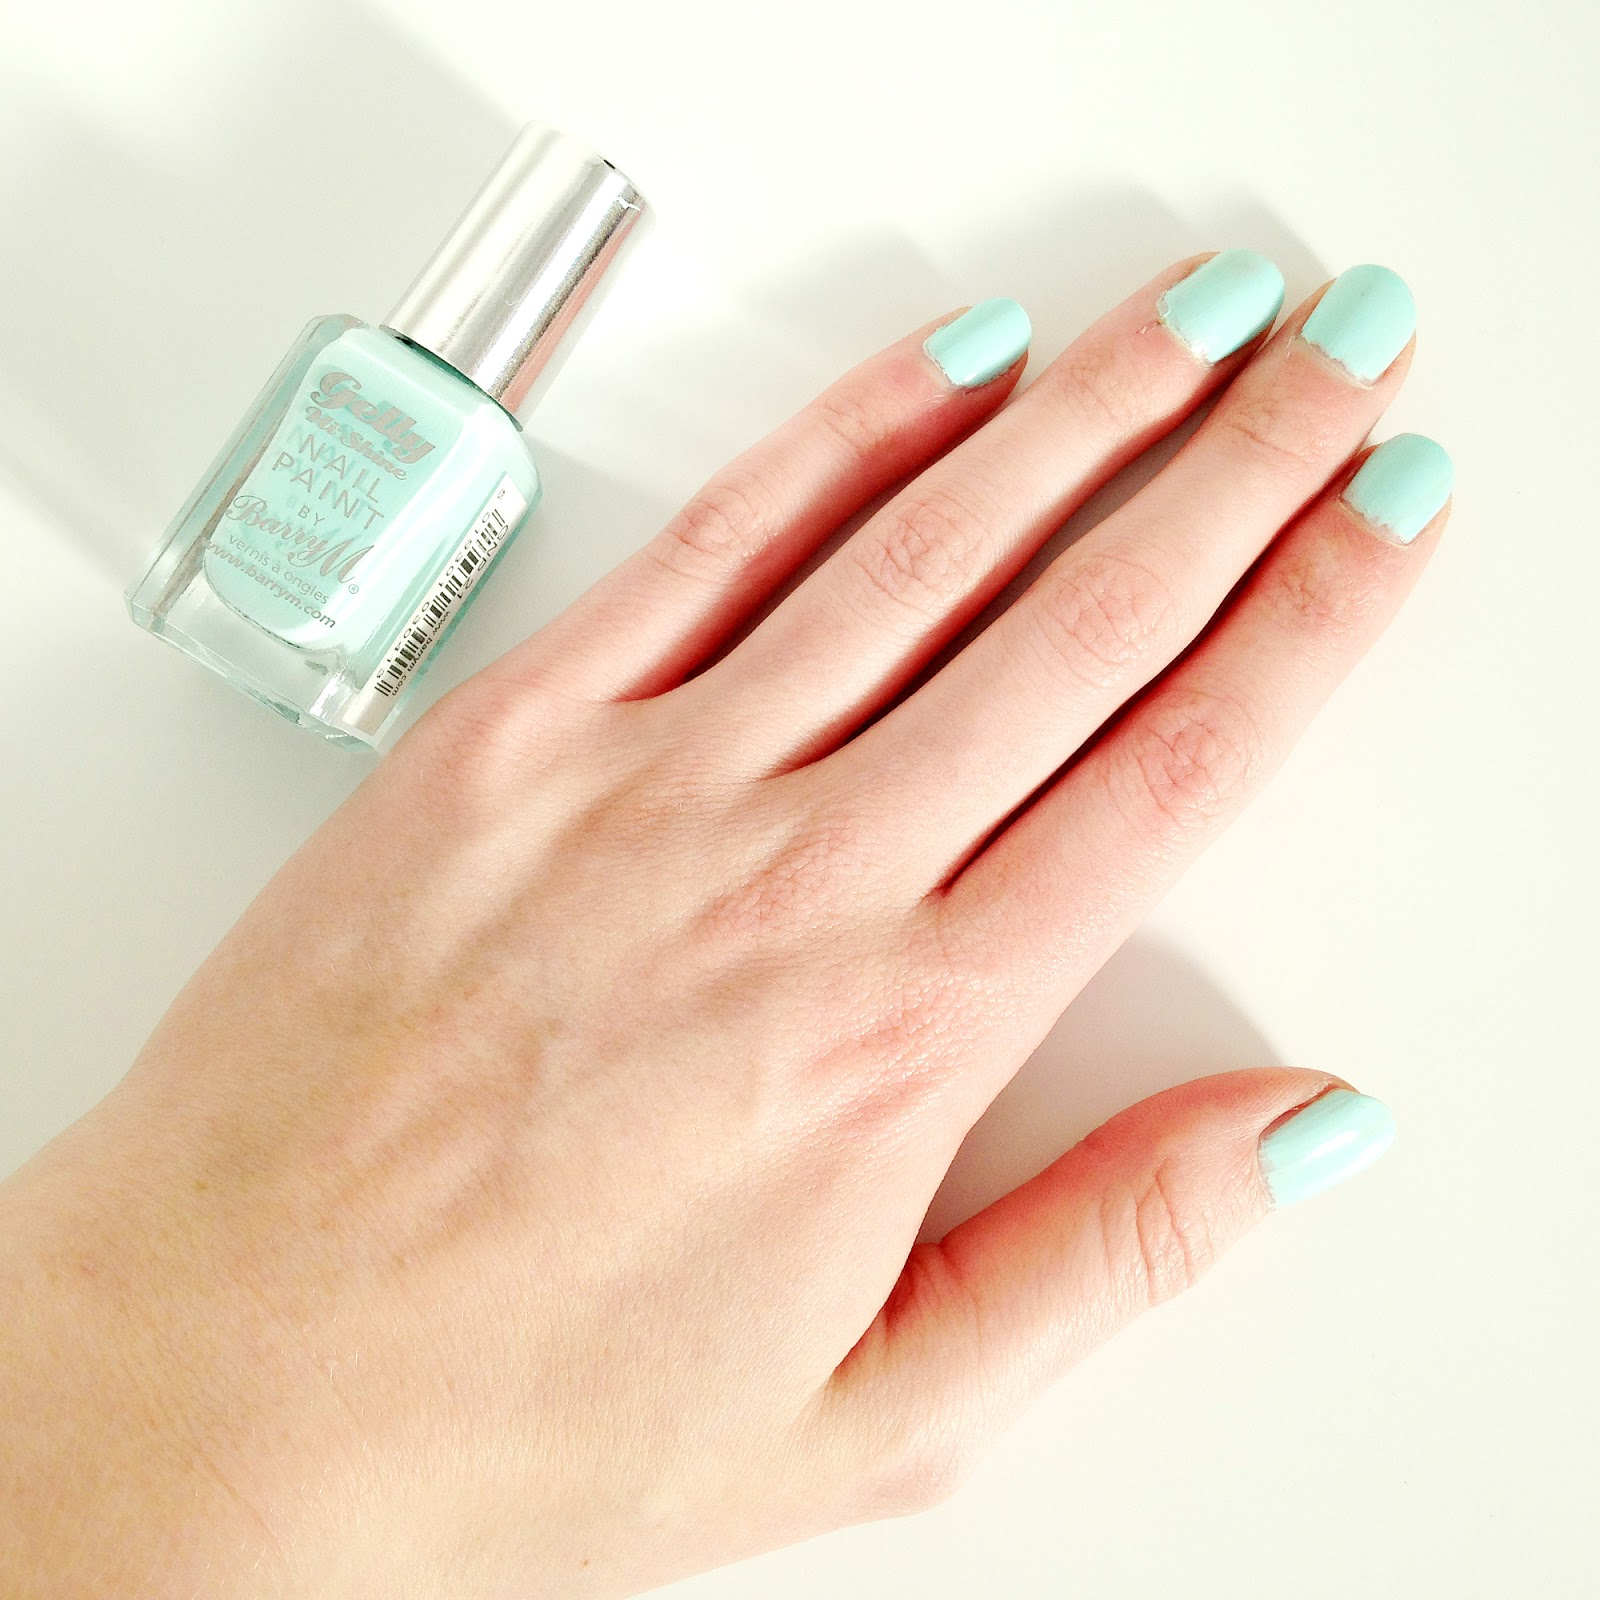 Barry M Sugar Apple Gelly Nail Paint